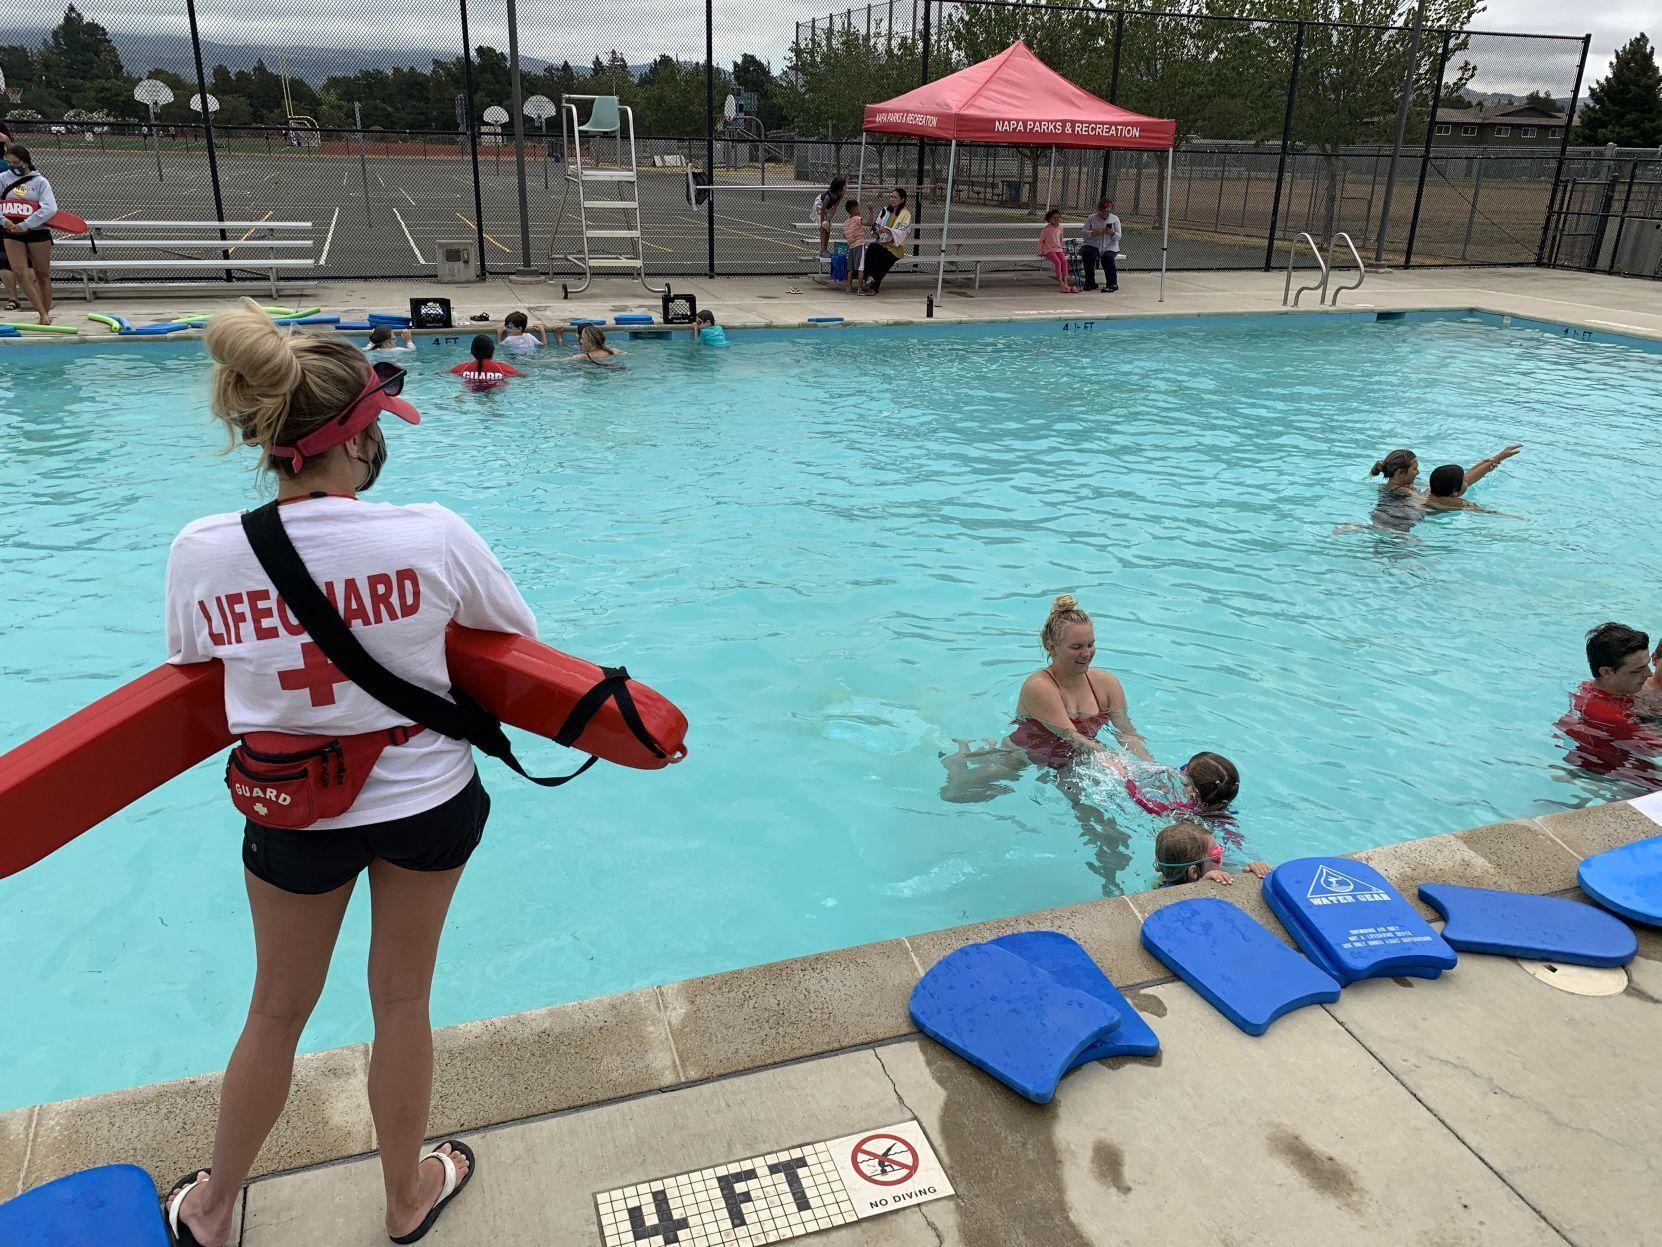 Napa Pools Remain Closed For Almost All Swimming Local News Napavalleyregister Com